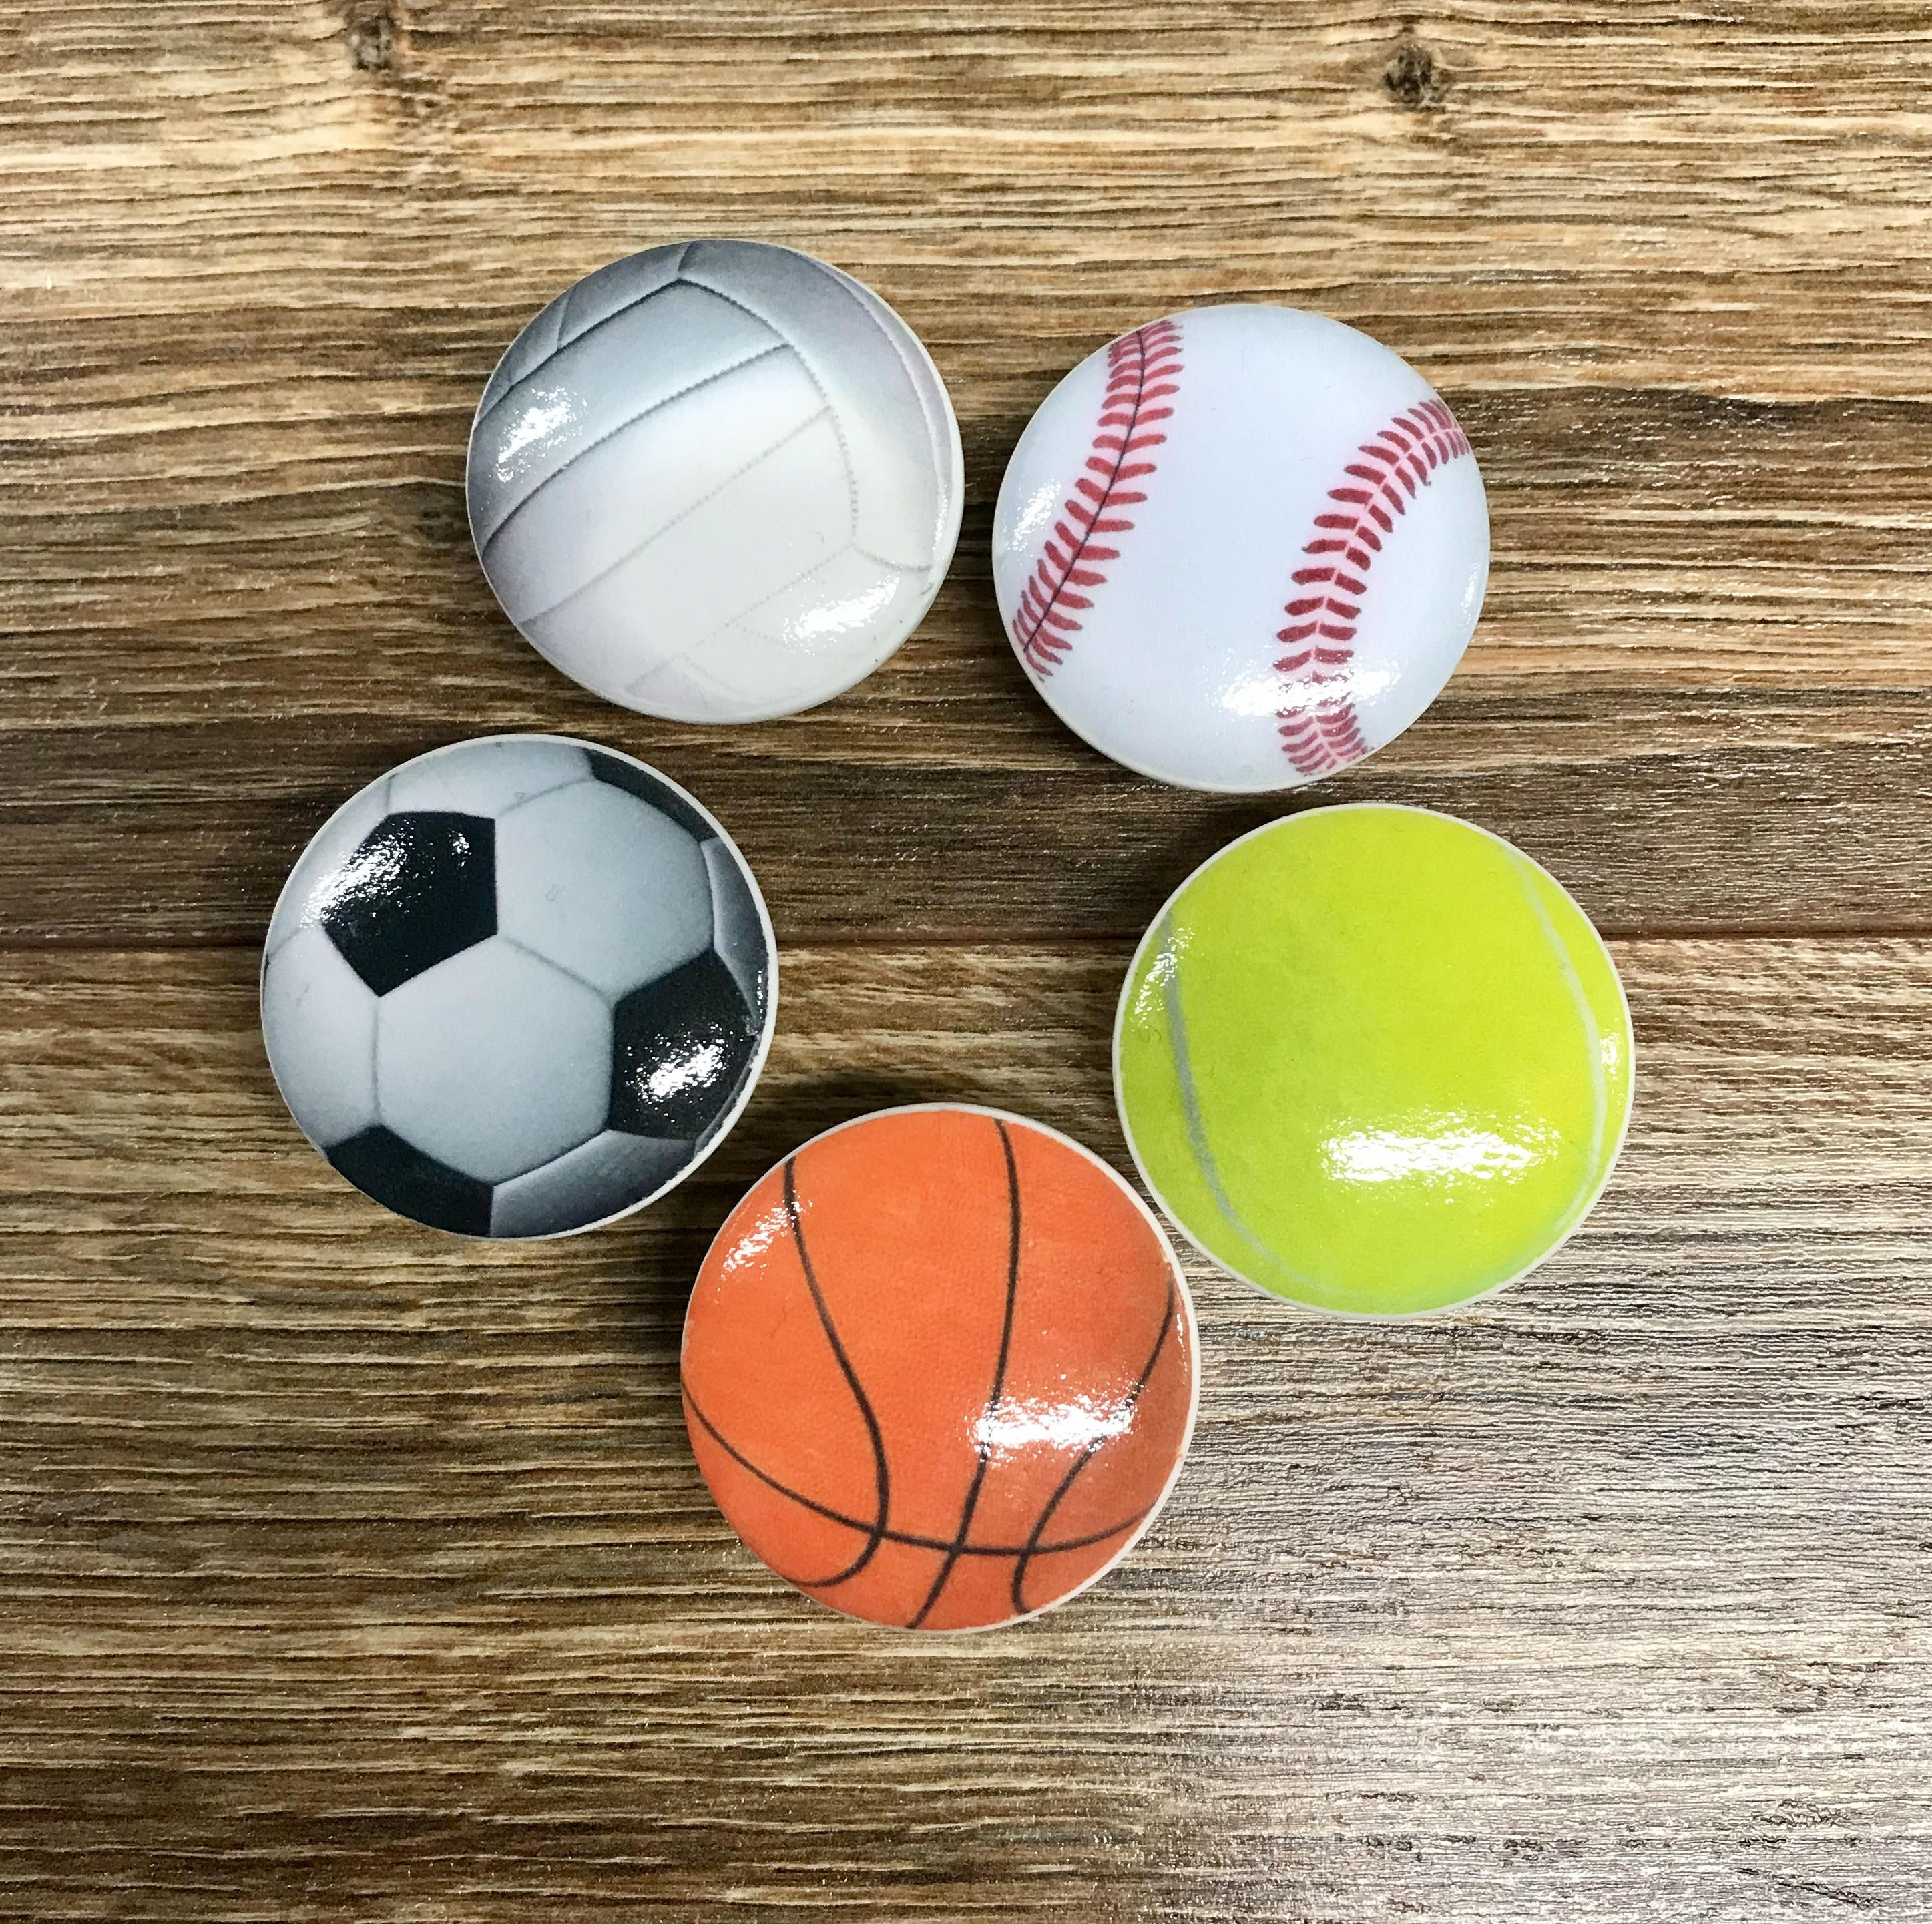 1 5 Sports Themed Cabinet S Drawer Pulls Baseball Basketball Volleyball Soccer Football Tennis Ball By